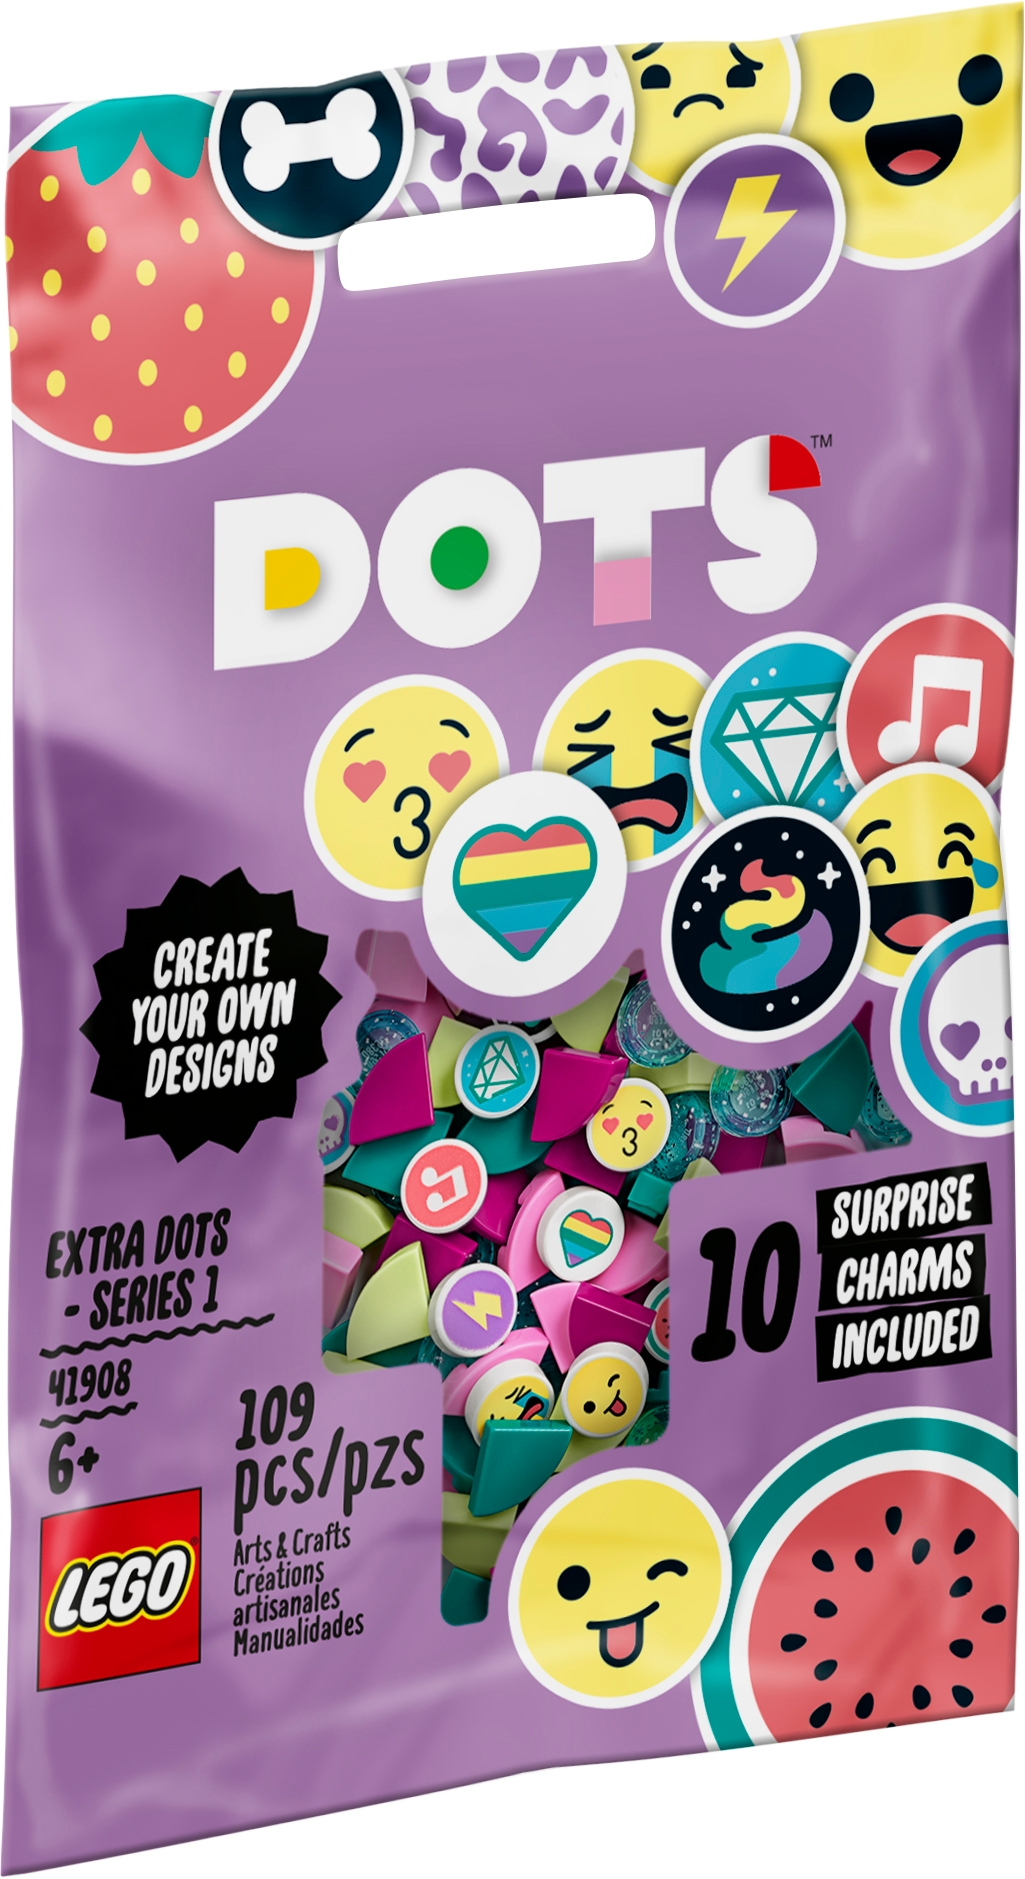 Series 1 41908 DIY Craft LEGO DOTS Extra DOTS A Fun add-on Tile Set for Kids who Like Arts-and-Crafts Play and Decorating Jewelry or Room d/écor and Prints New 2020 109 Pieces